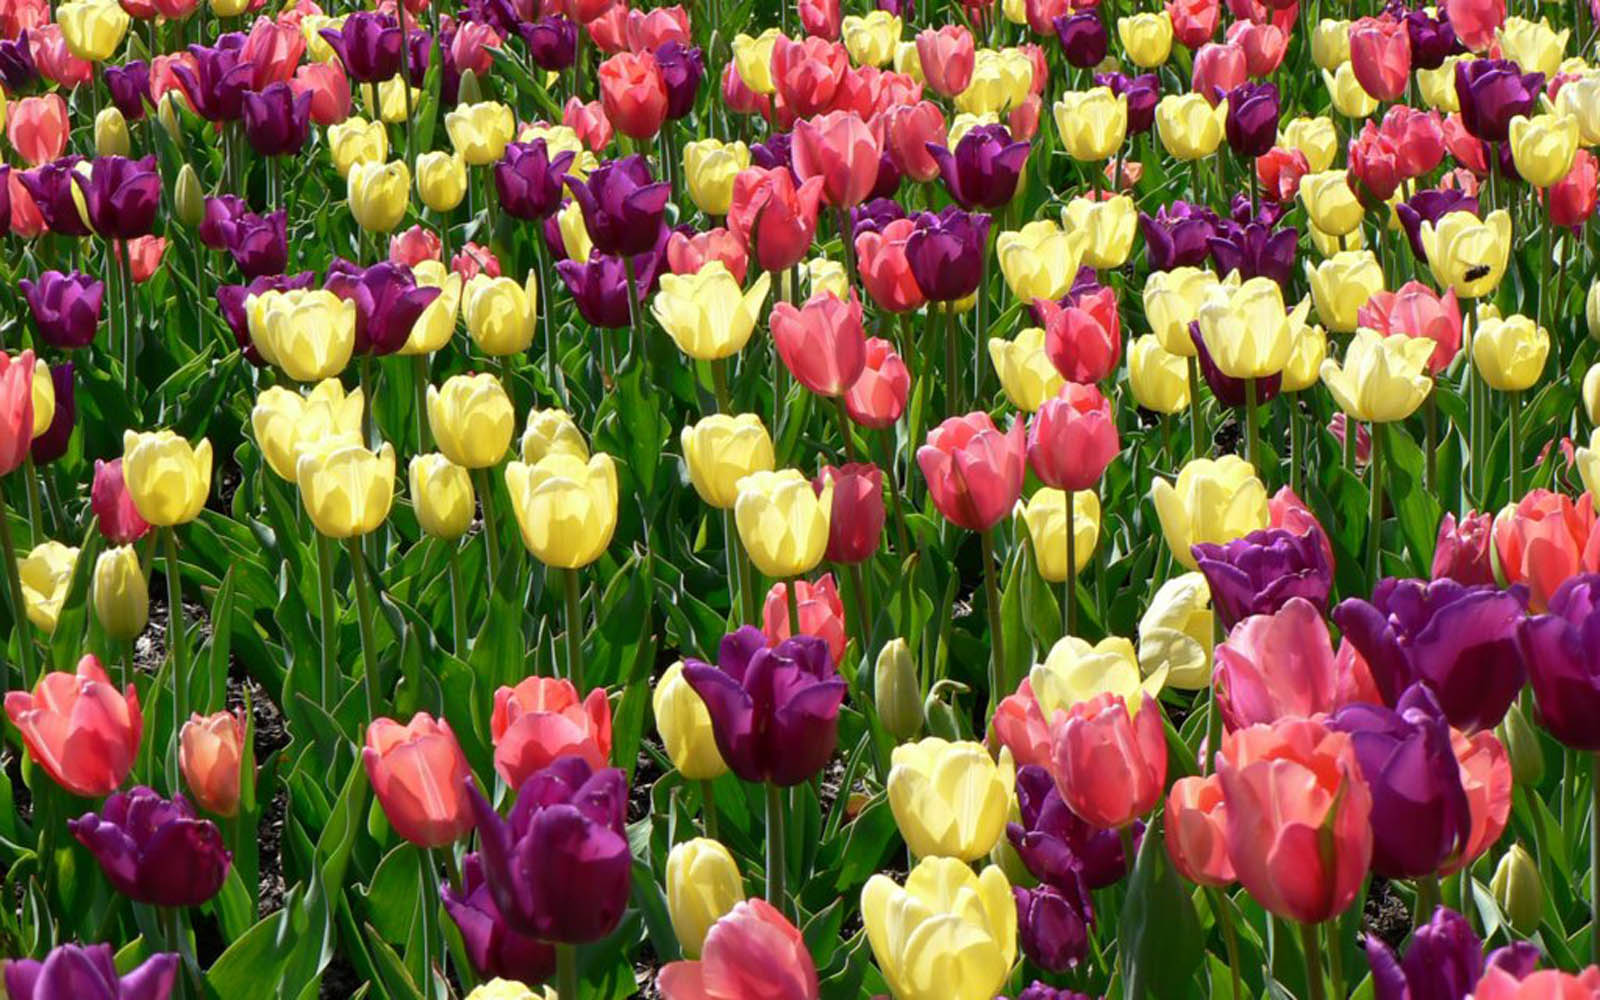 Flowers Wallpapers Images Photos Pictures and Backgrounds for 1600x1000